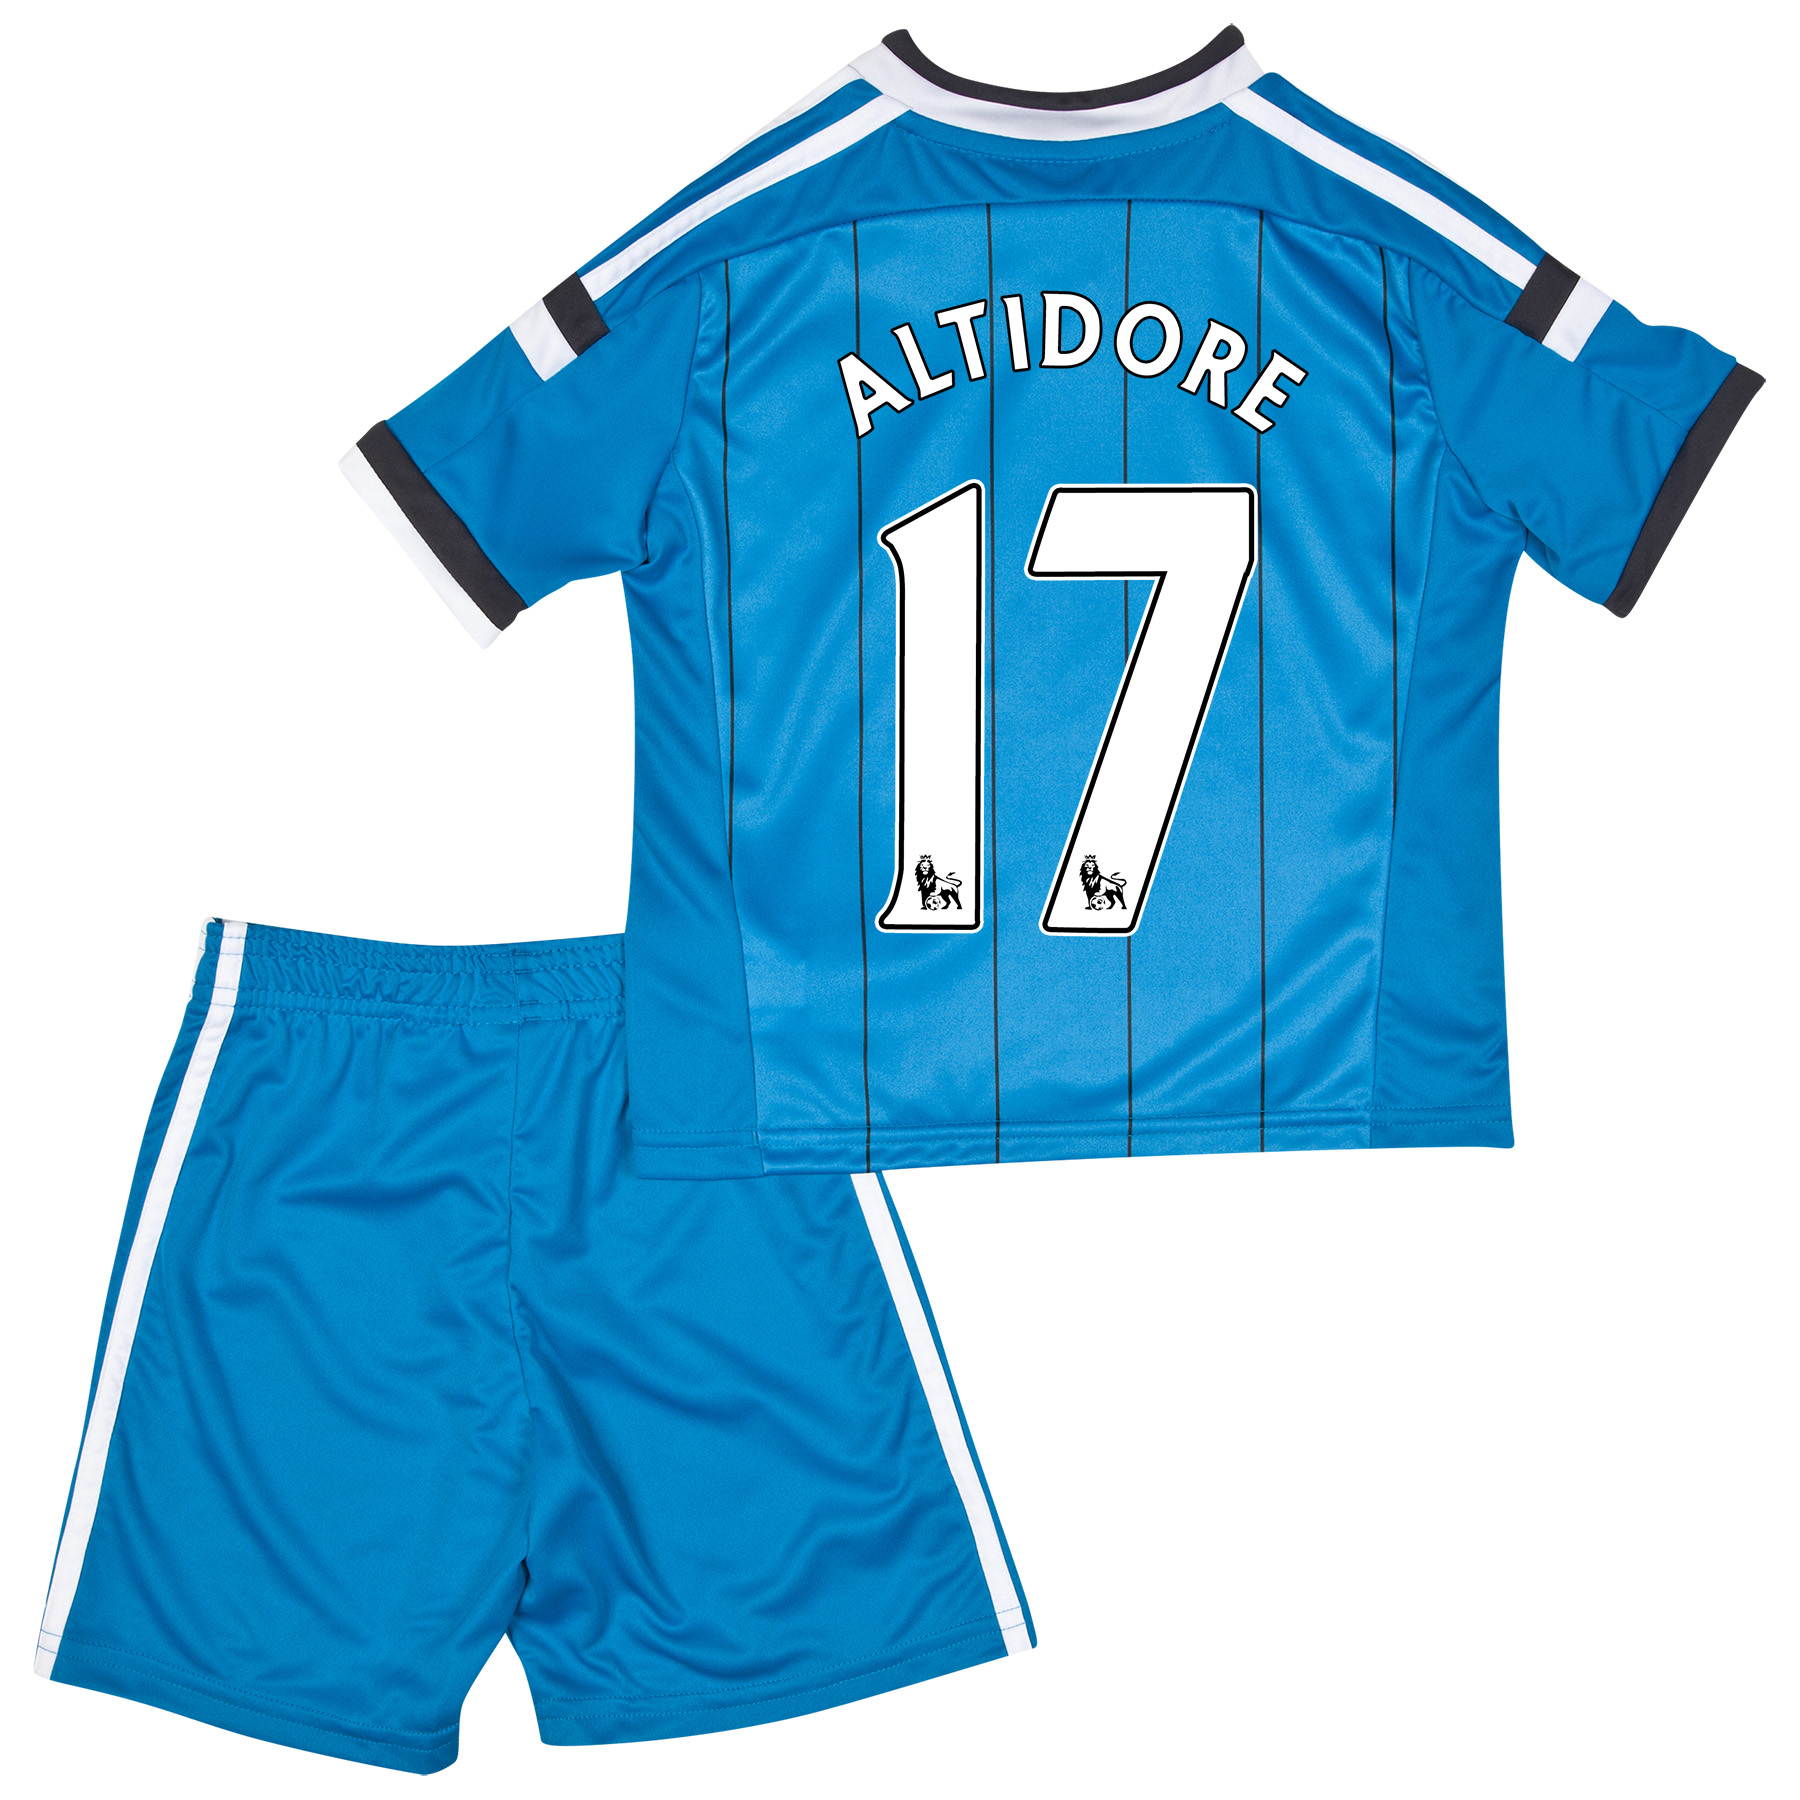 Sunderland Away Mini Kit 2014/15 Lt Blue with Altidore 17 printing